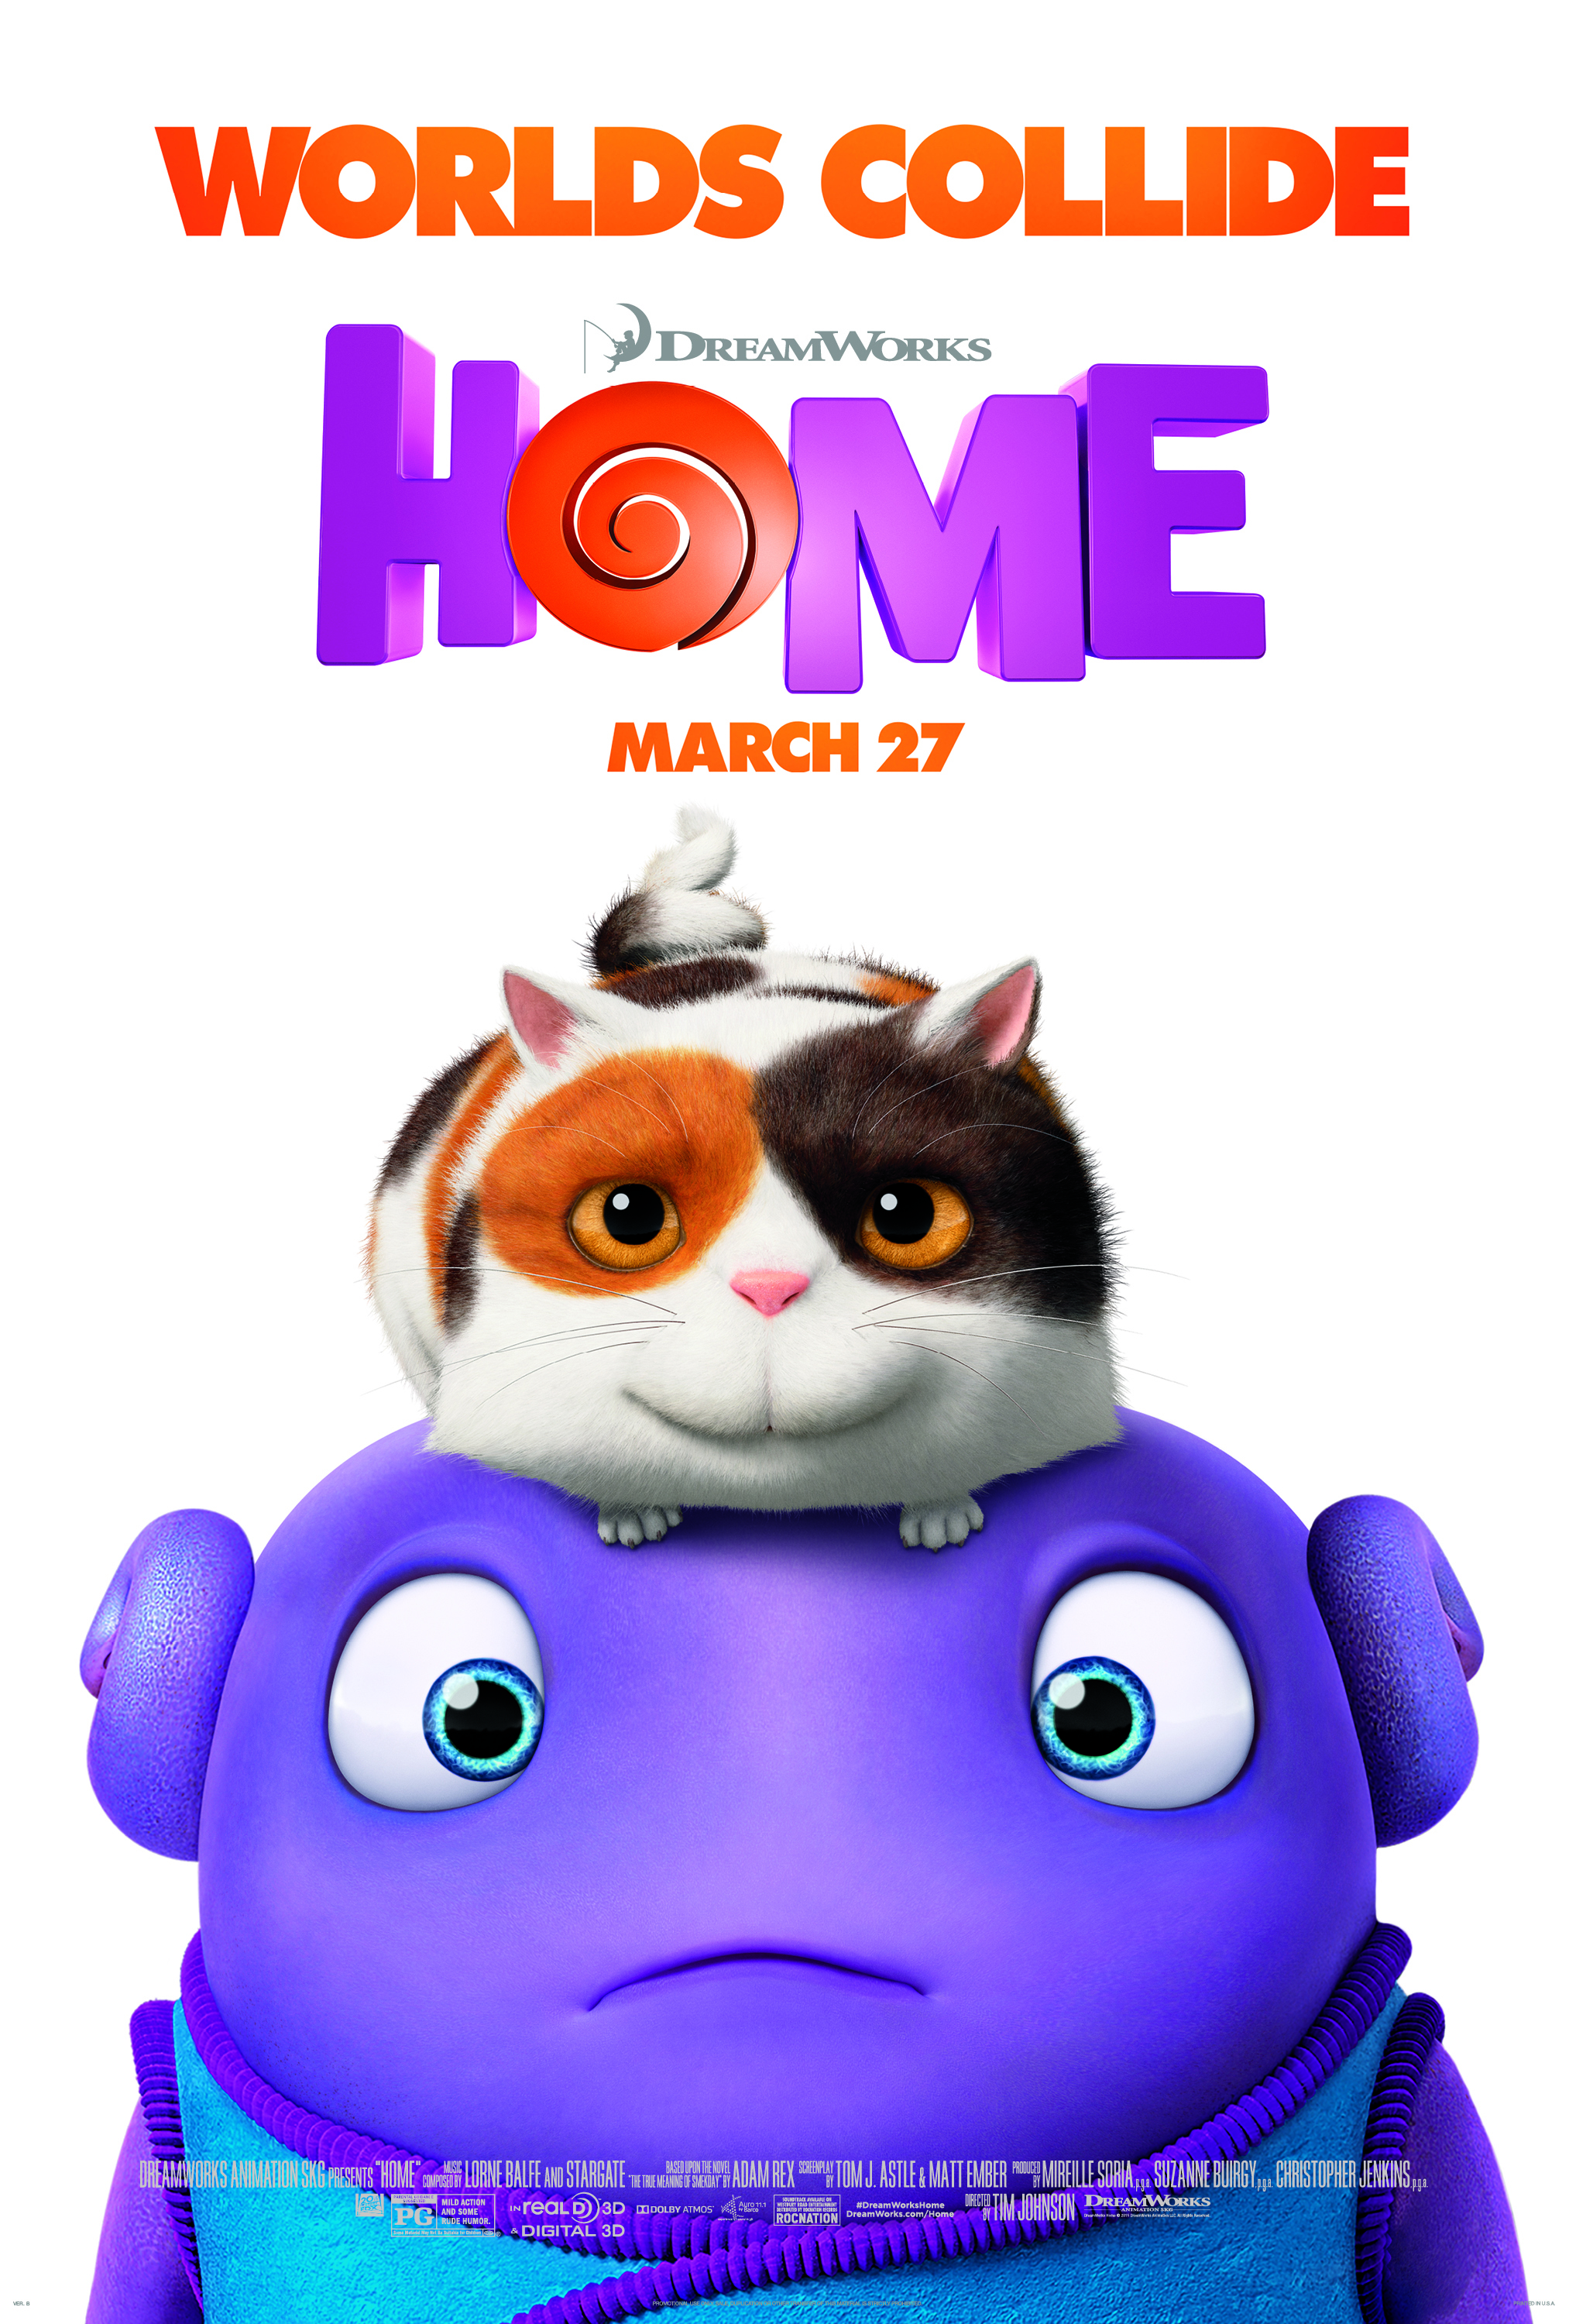 Get Tickets to See Dreamworks HOME at an Early Screening in SLC!